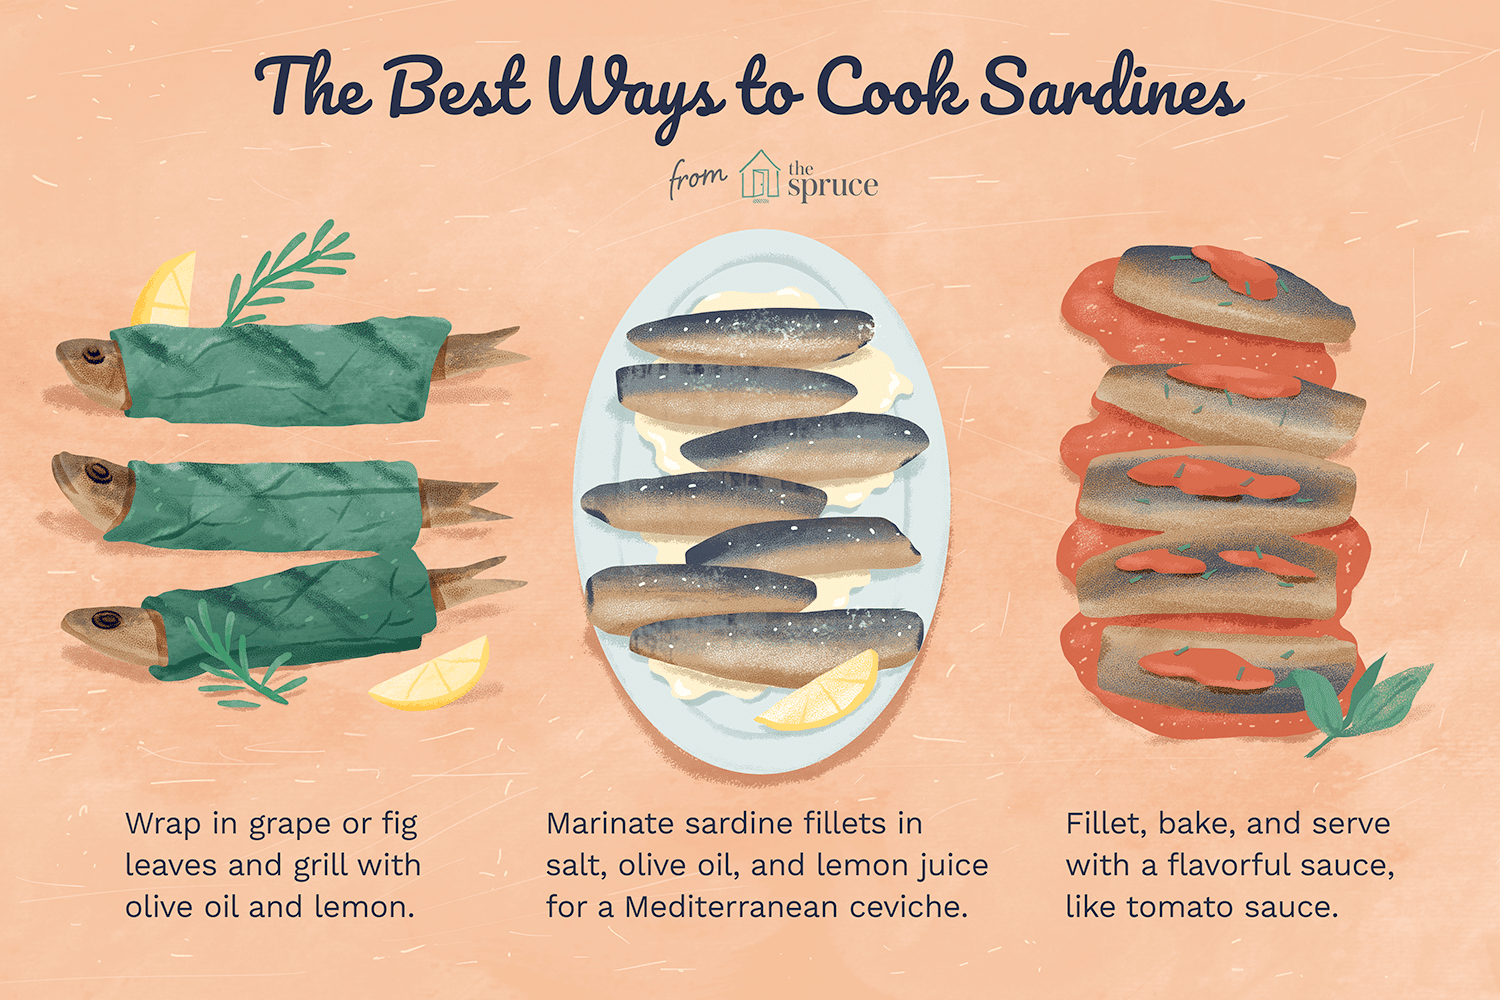 illustration that shows the three best ways to cook sardines